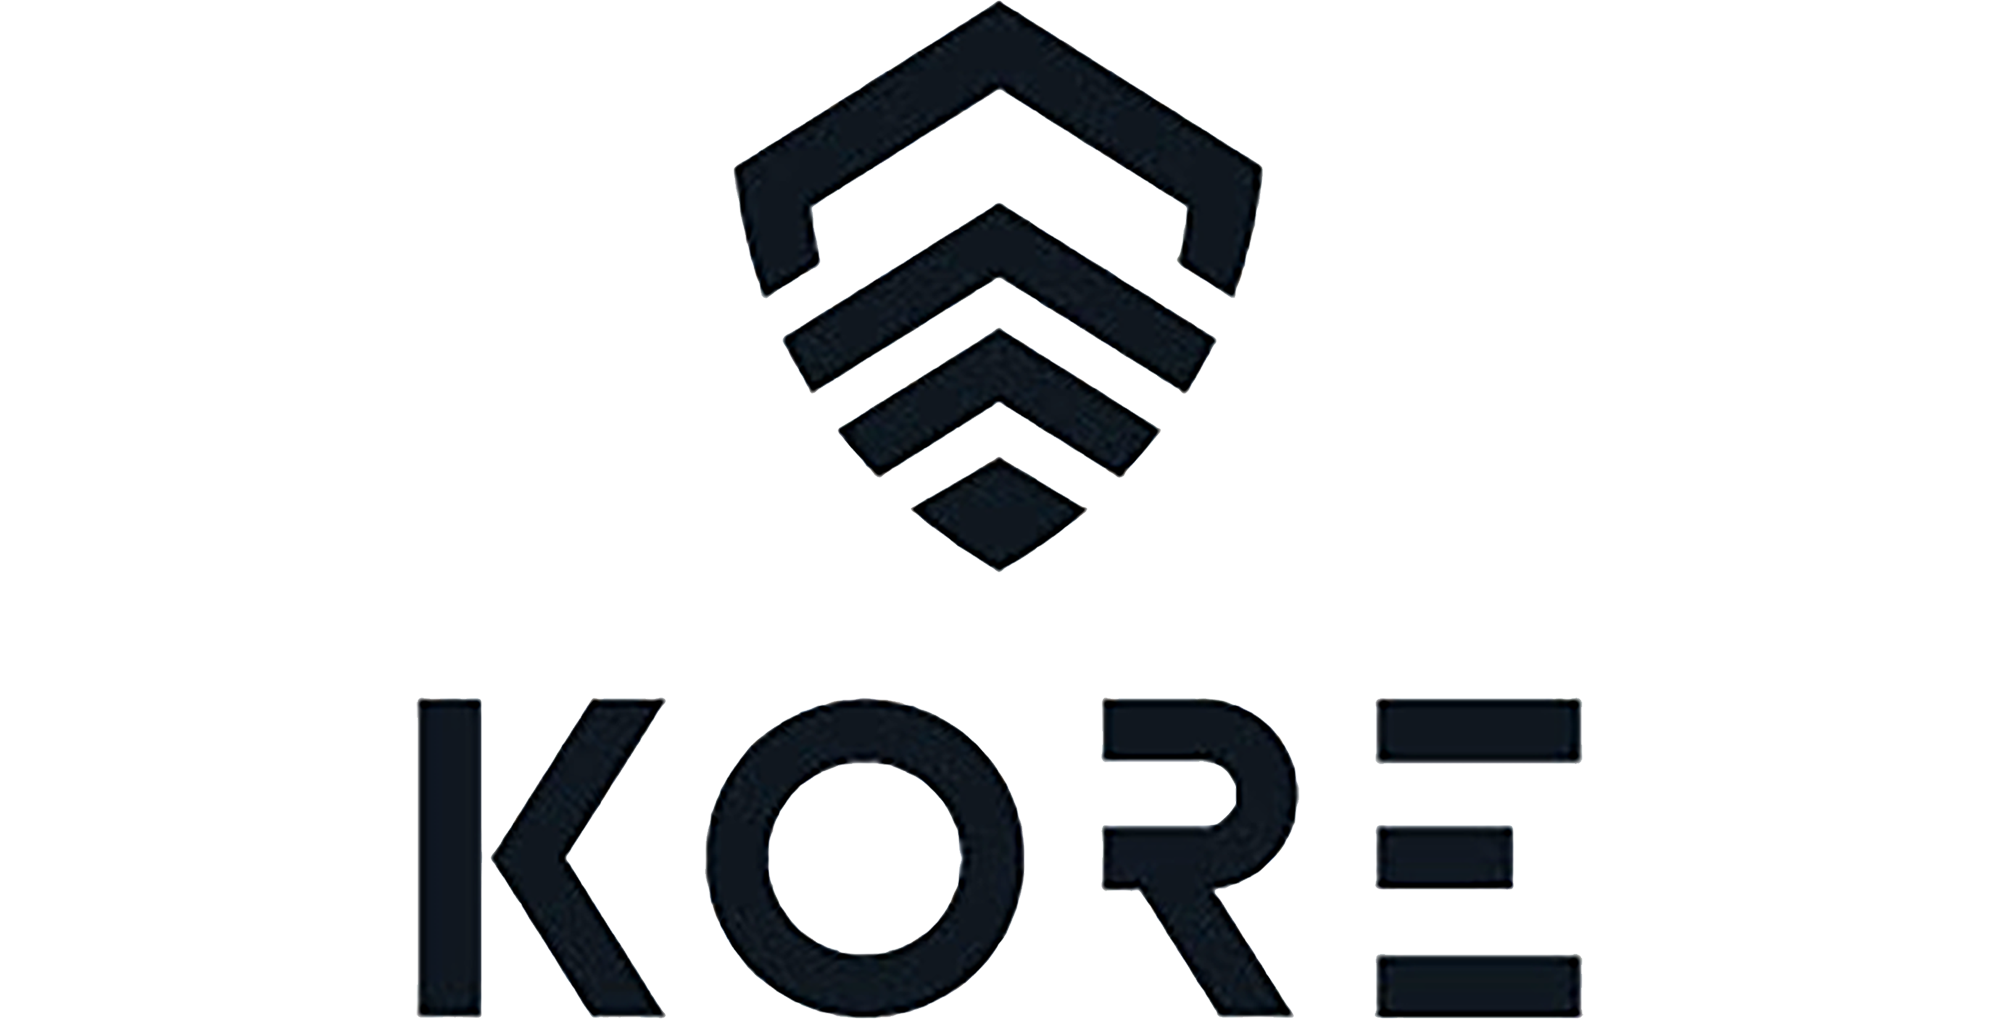 Kore Essentials Gift Offer Promo Code Findkeep Love Does the company stand behind their products. kore essentials gift offer promo code